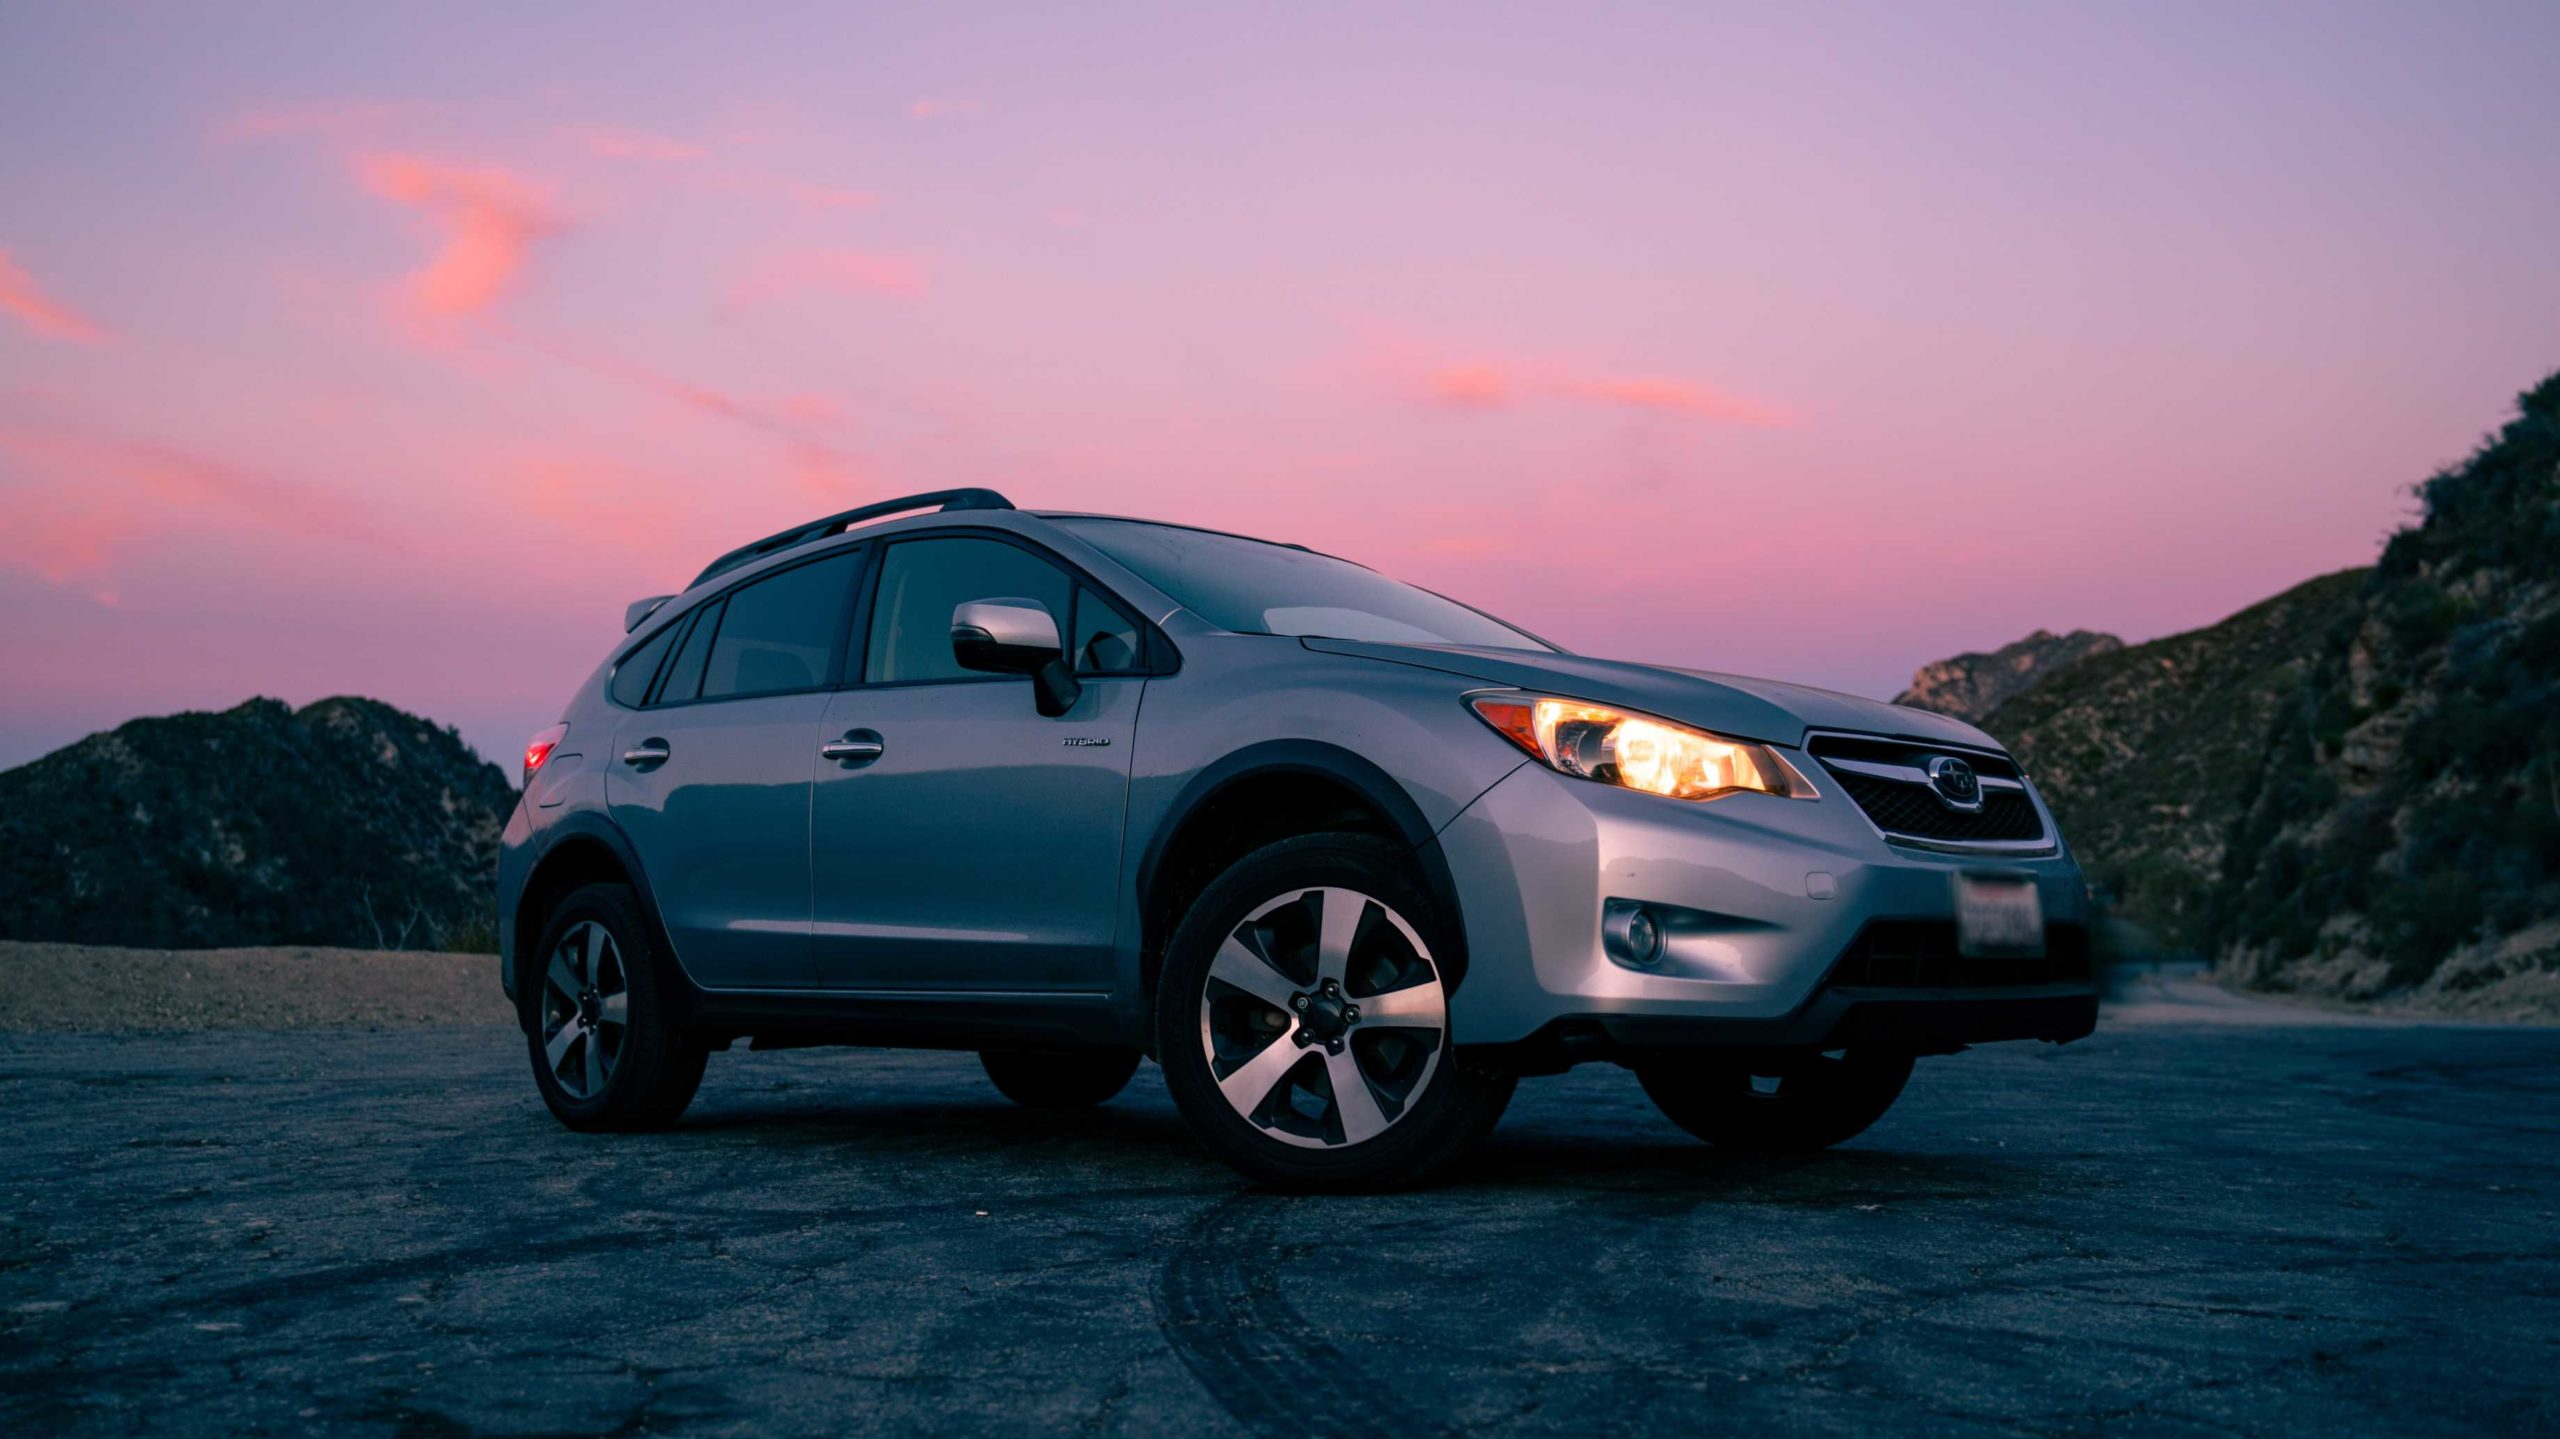 A second hand suv at dusk